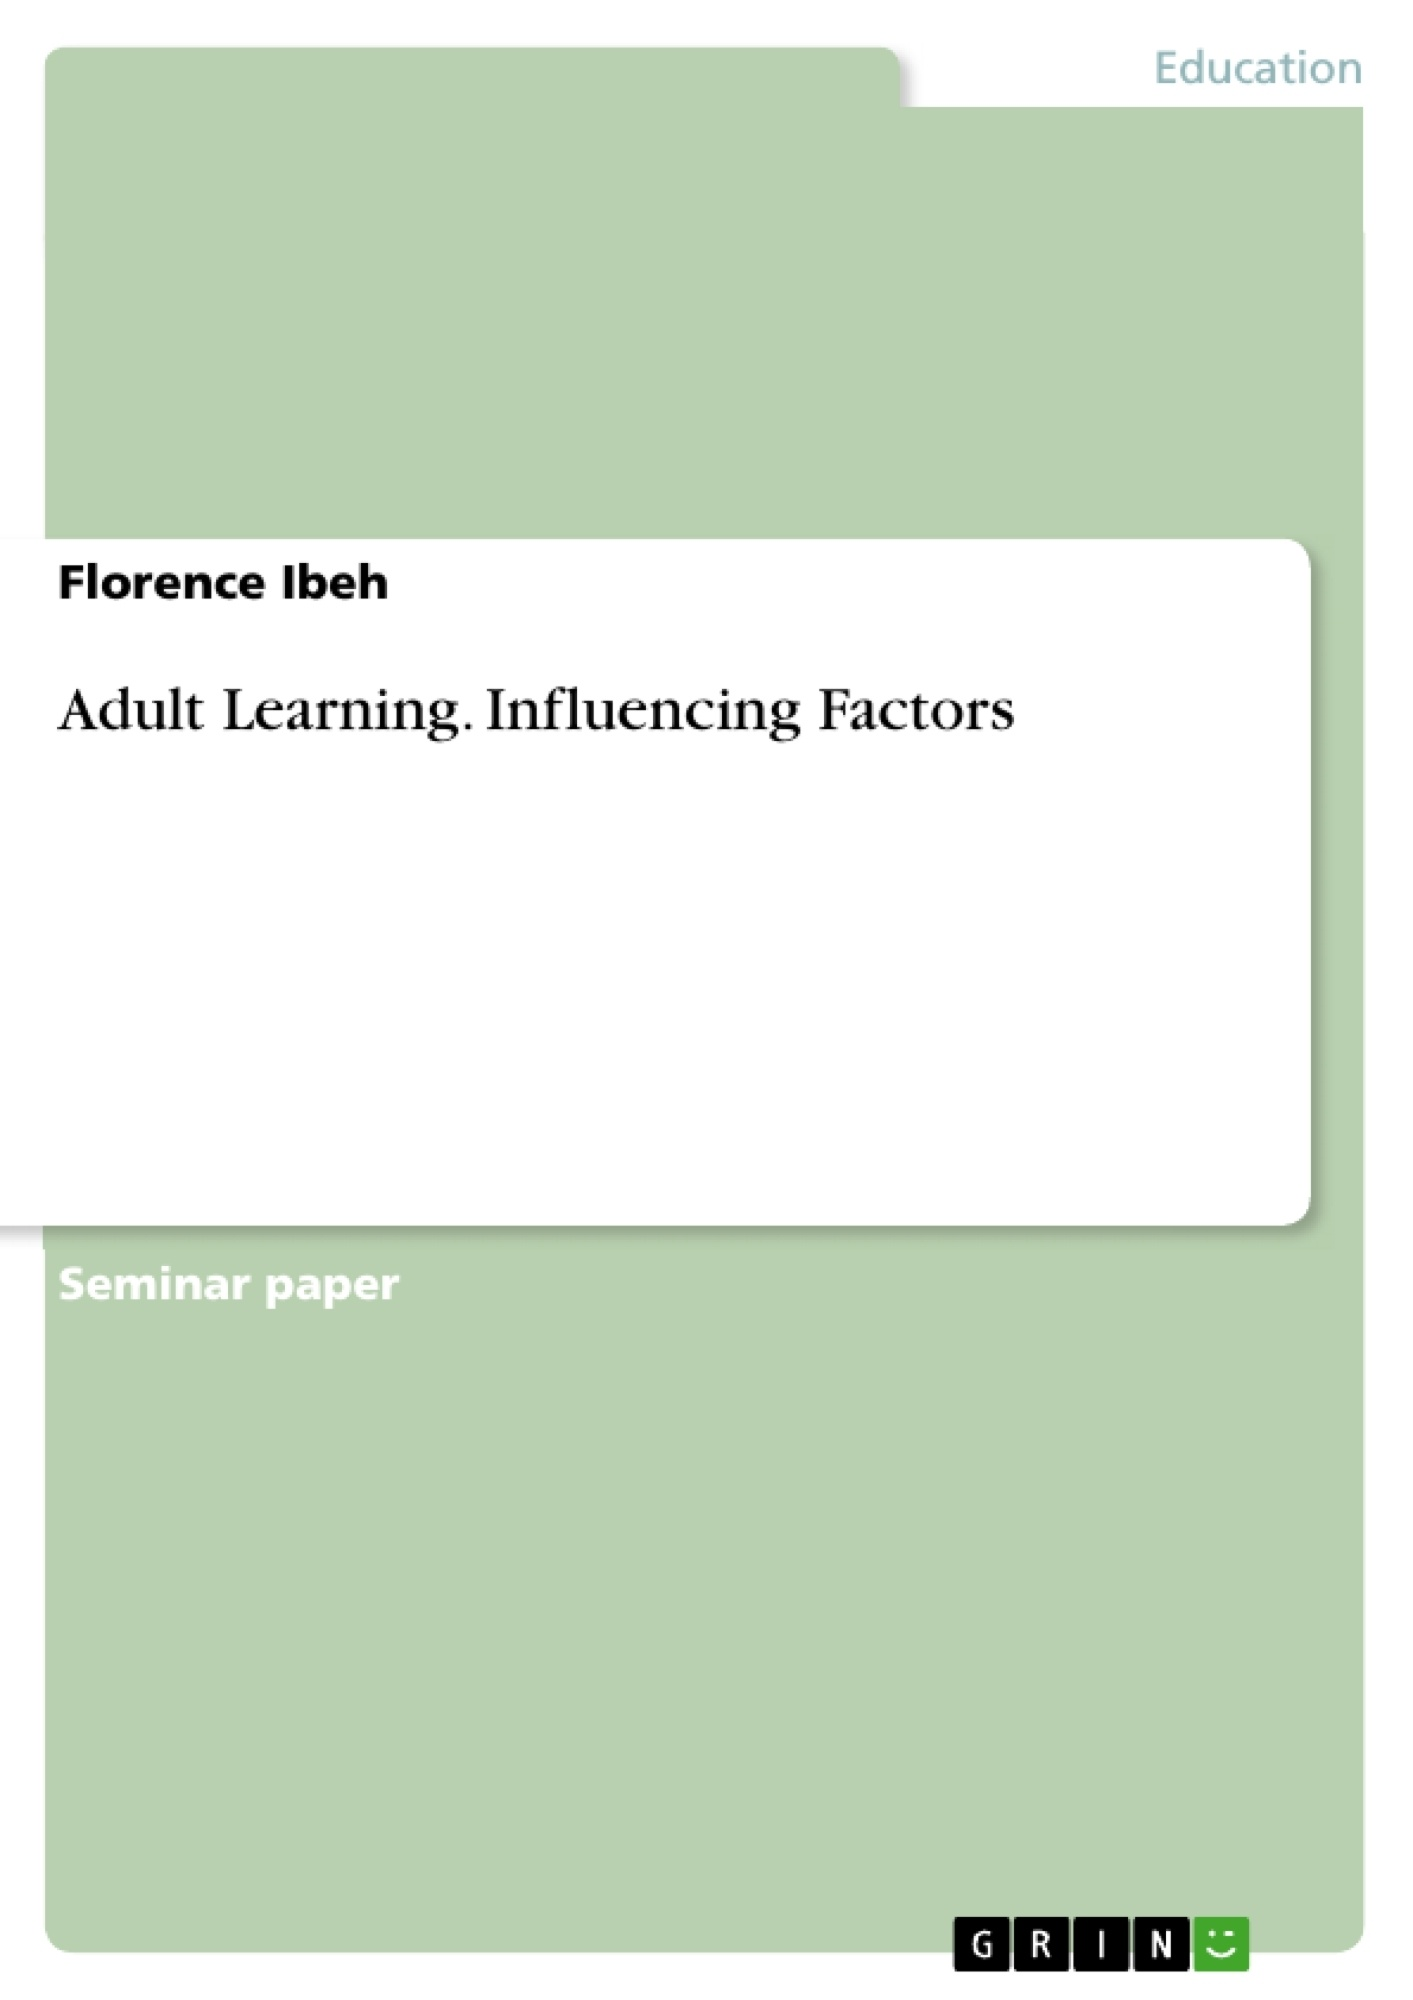 Title: Adult Learning. Influencing Factors